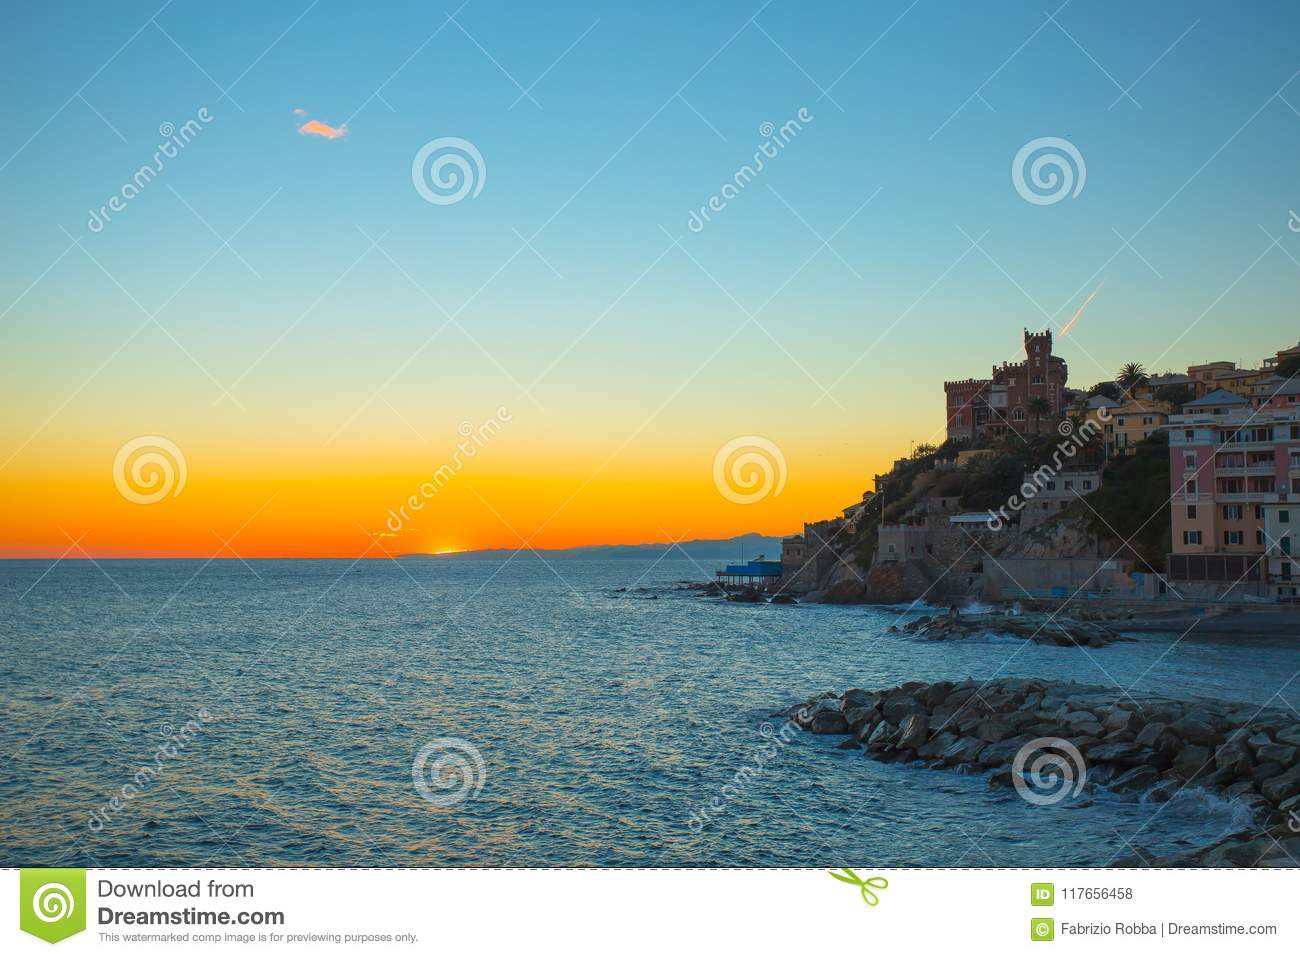 Sunset in the sea village with color huoses/ sunset/ Sun/houses/Genoa/Italy